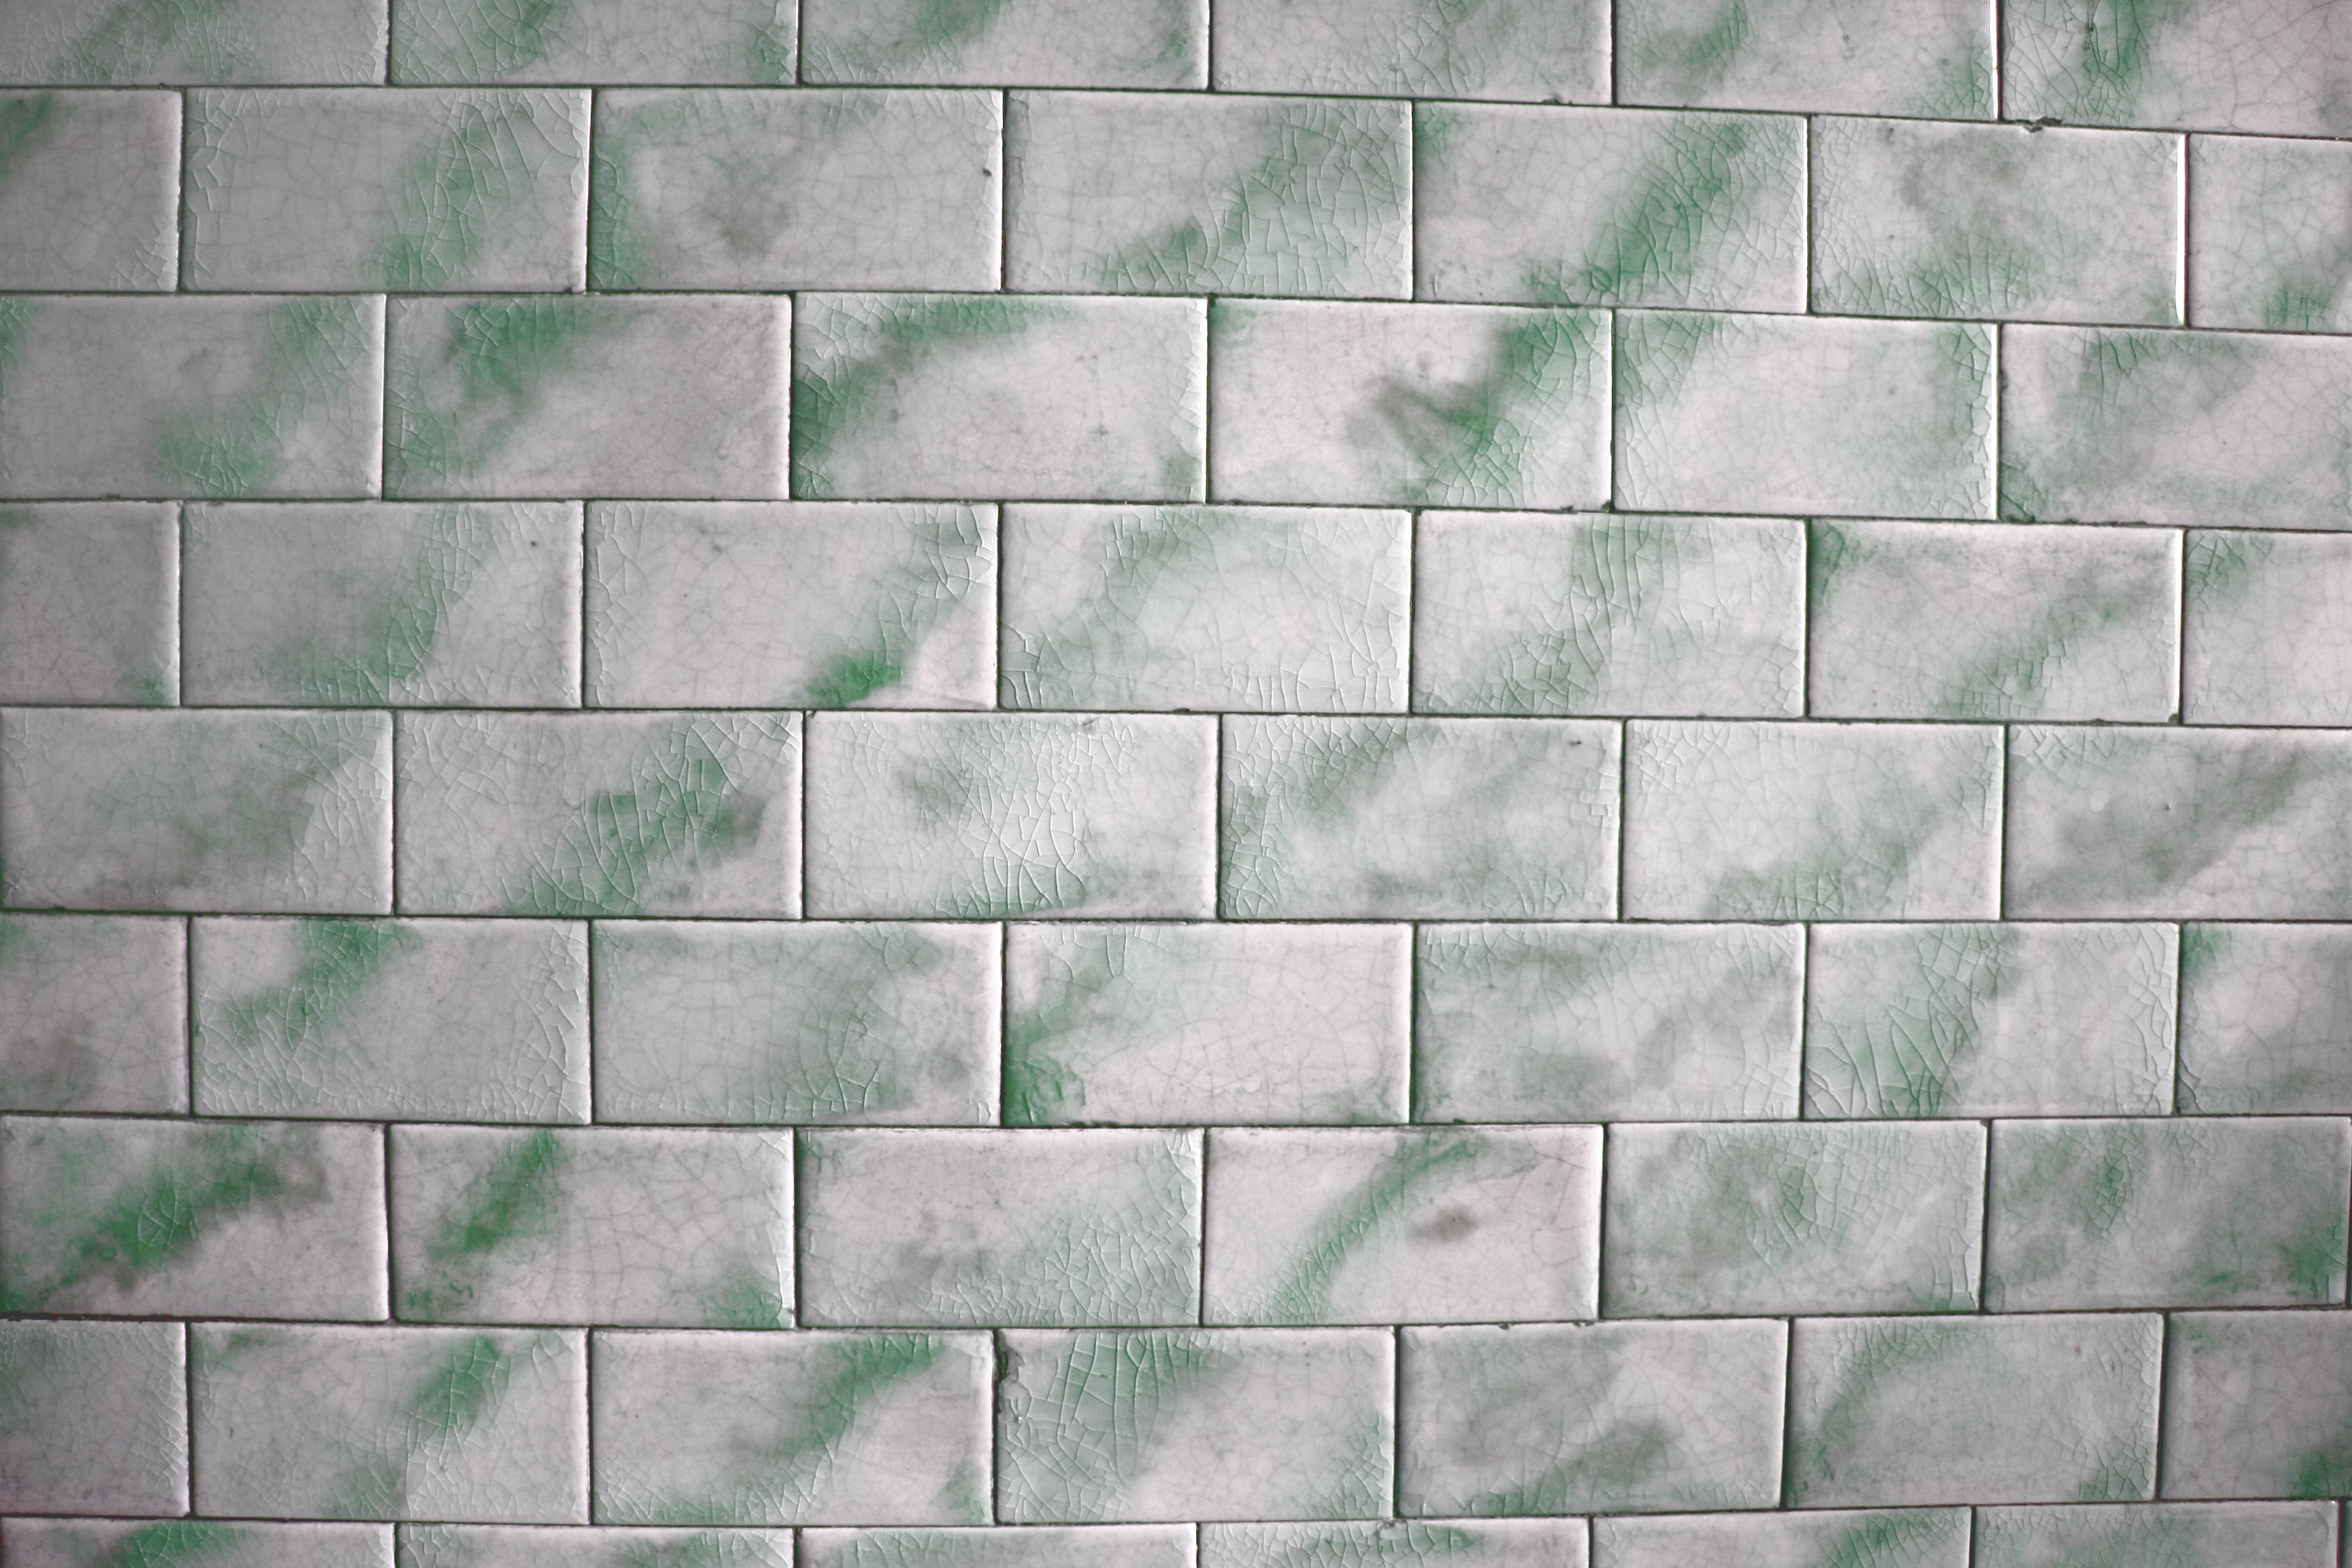 Vintage Green and White Tile Texture Picture   Free ...